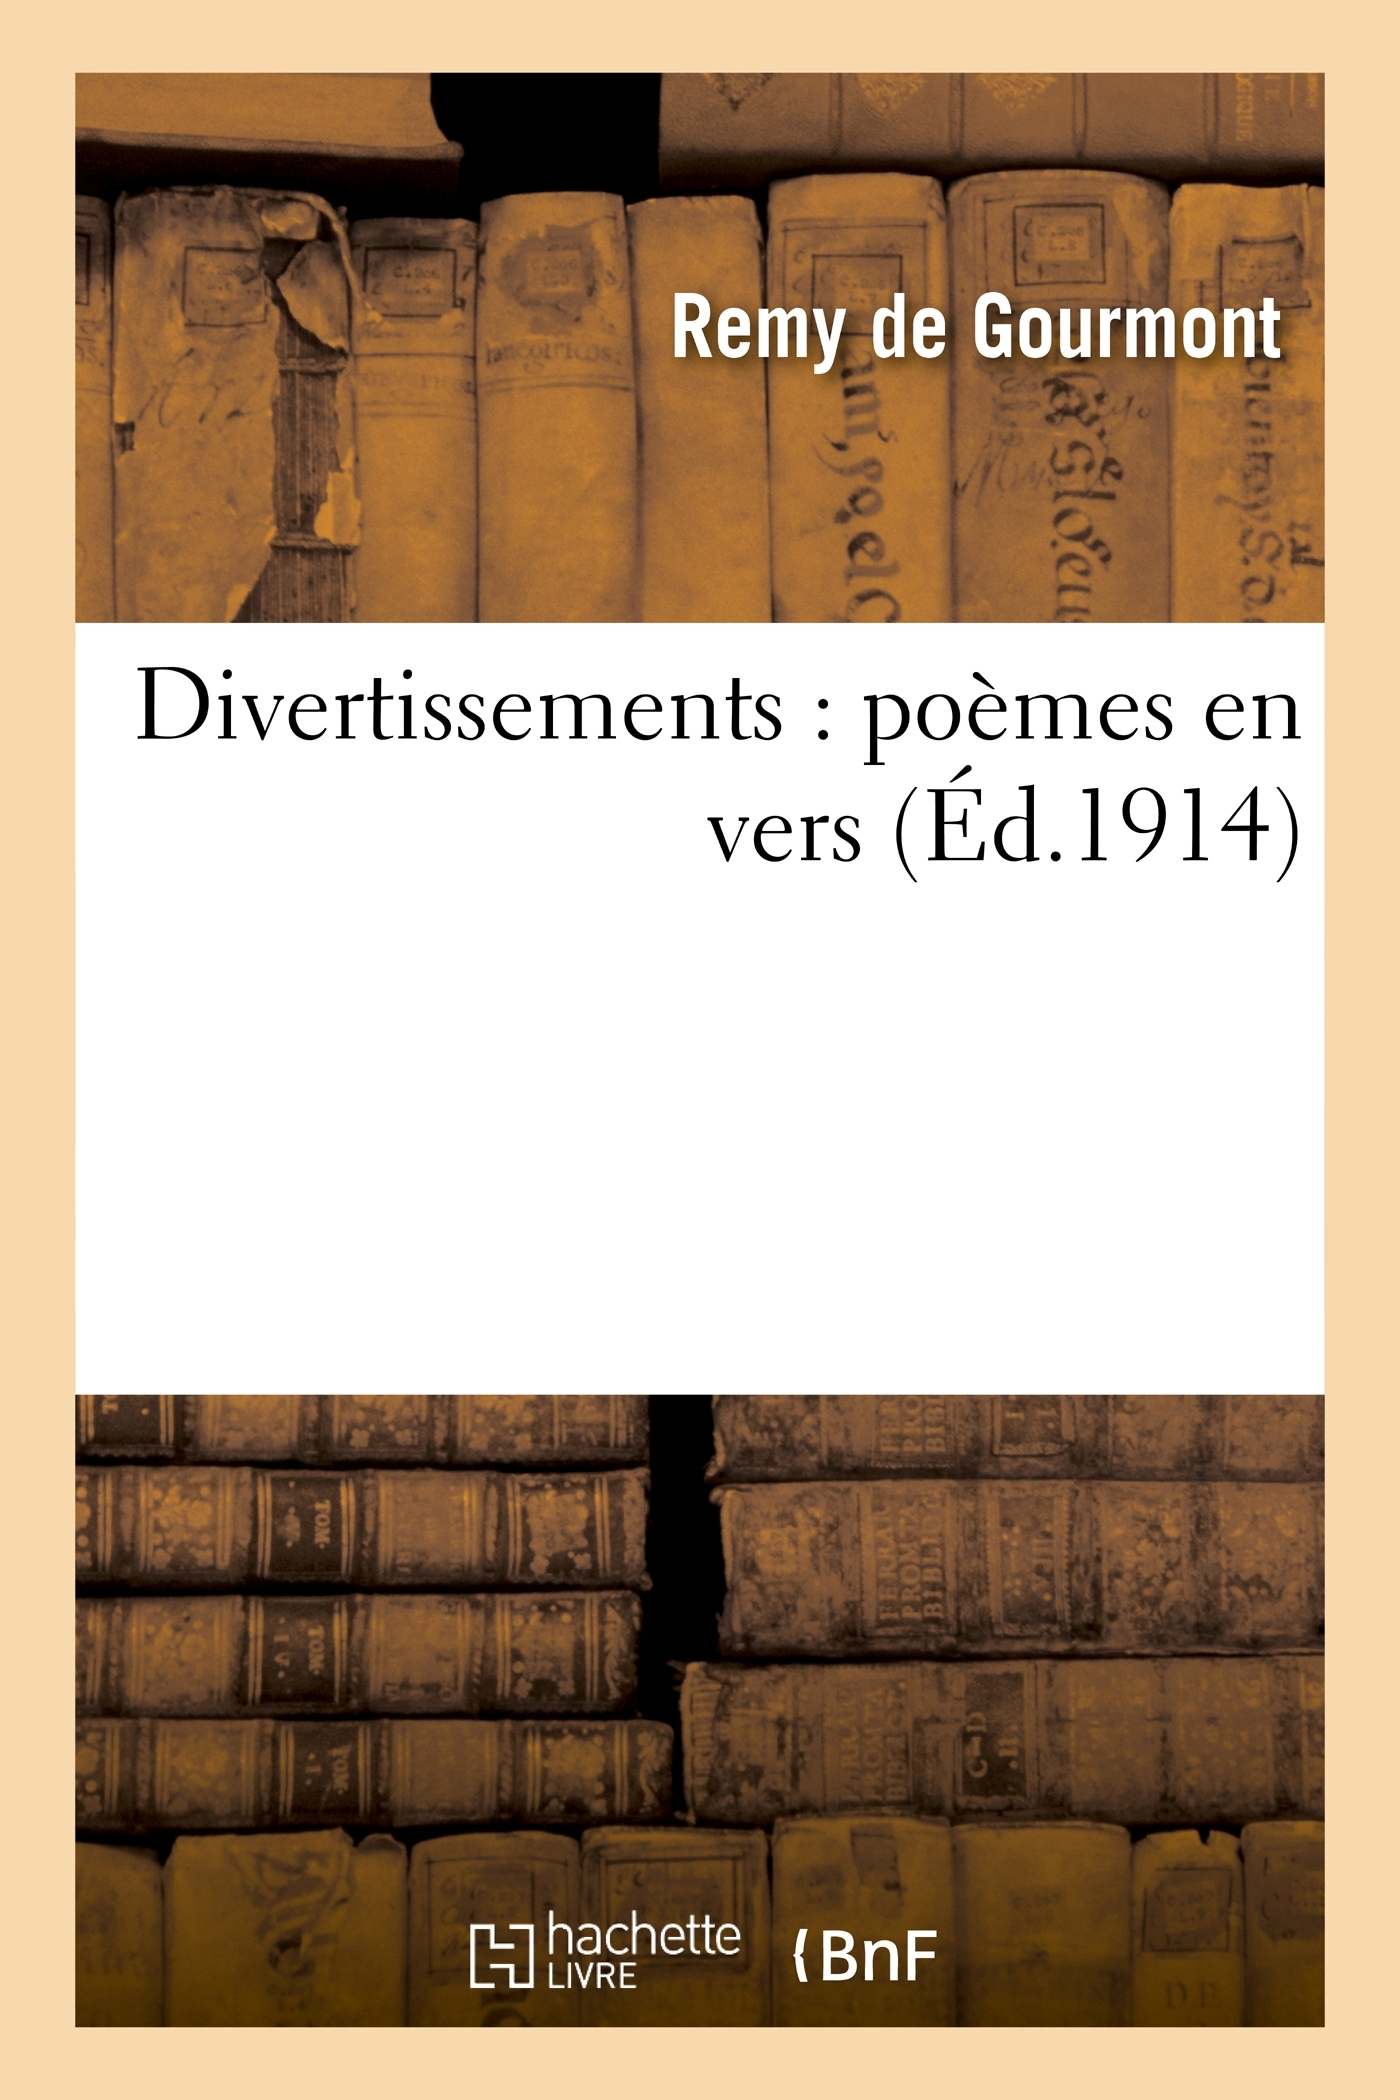 DIVERTISSEMENTS : POEMES EN VERS